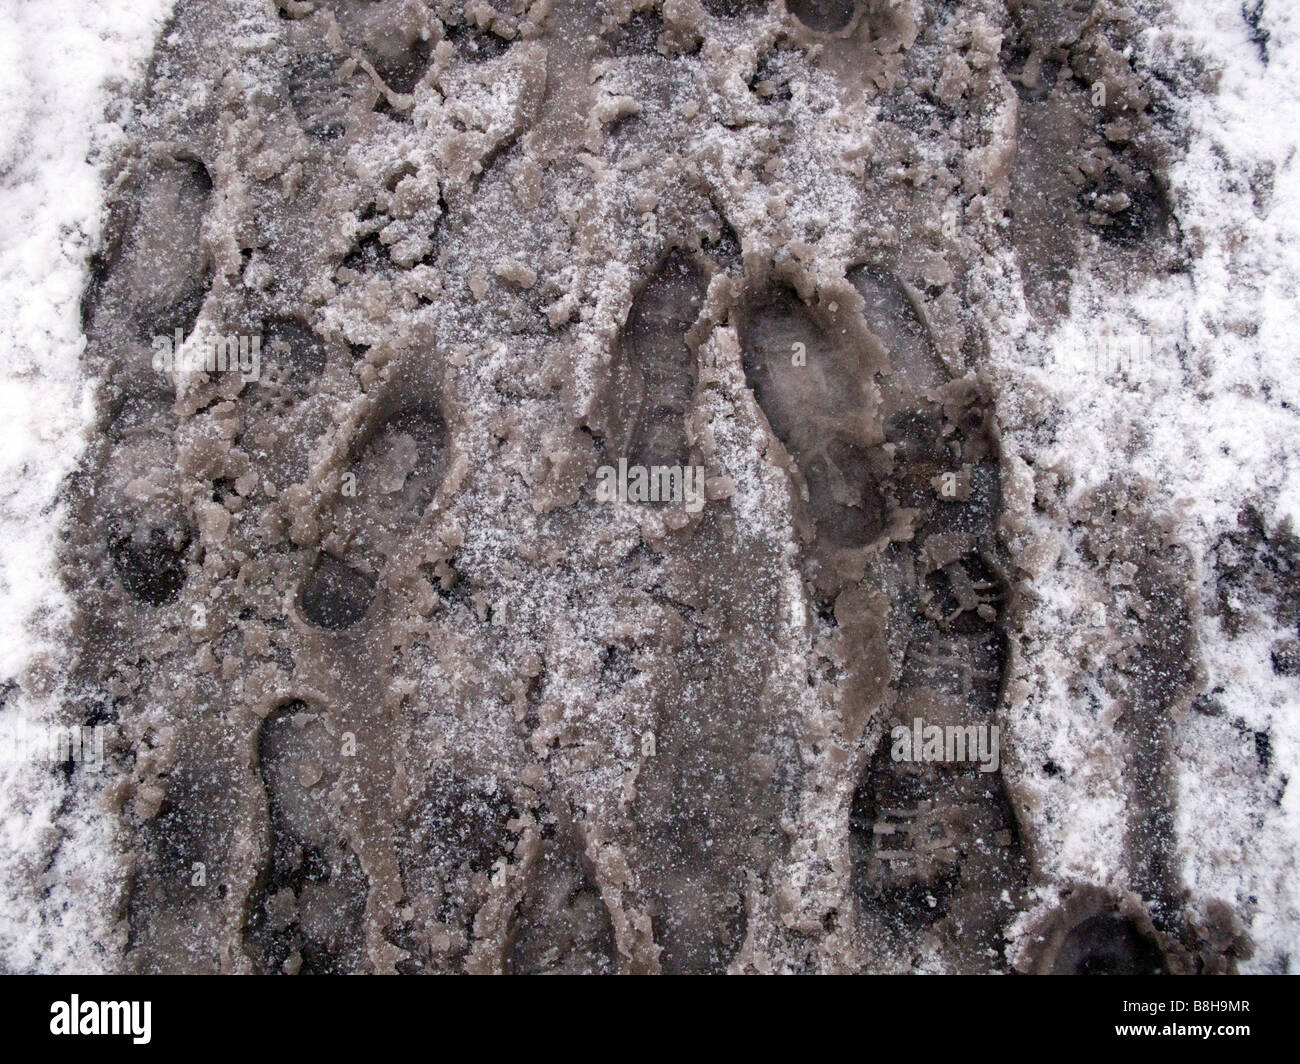 Snow sludge - Stock Image